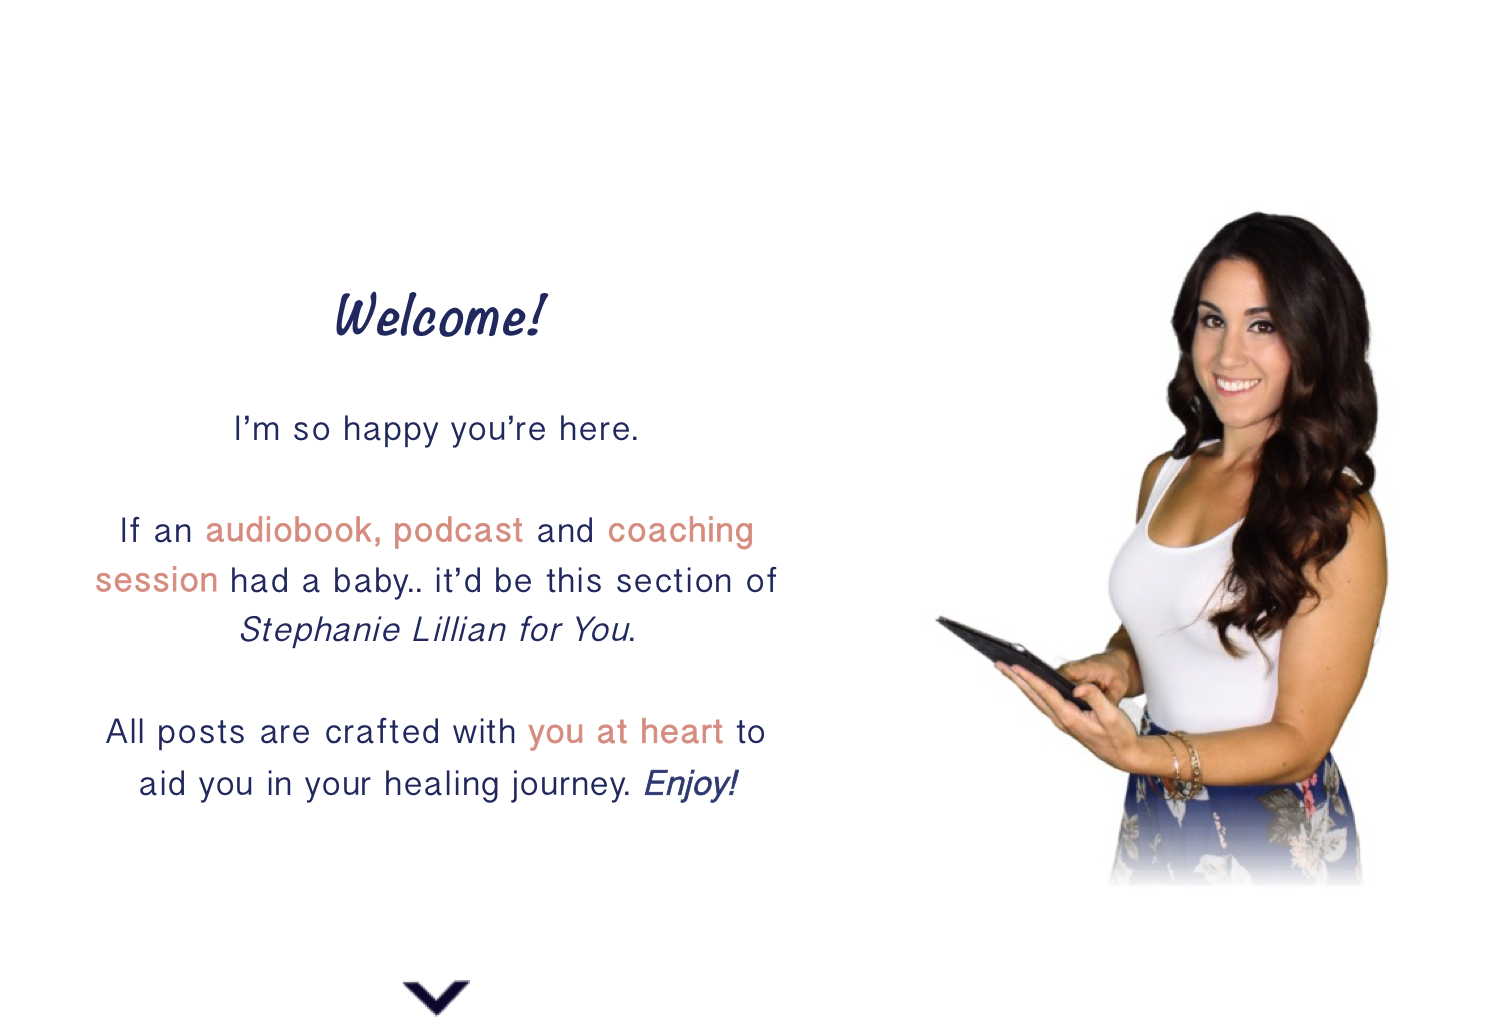 Welcome to How-to with Stephanie Lillian